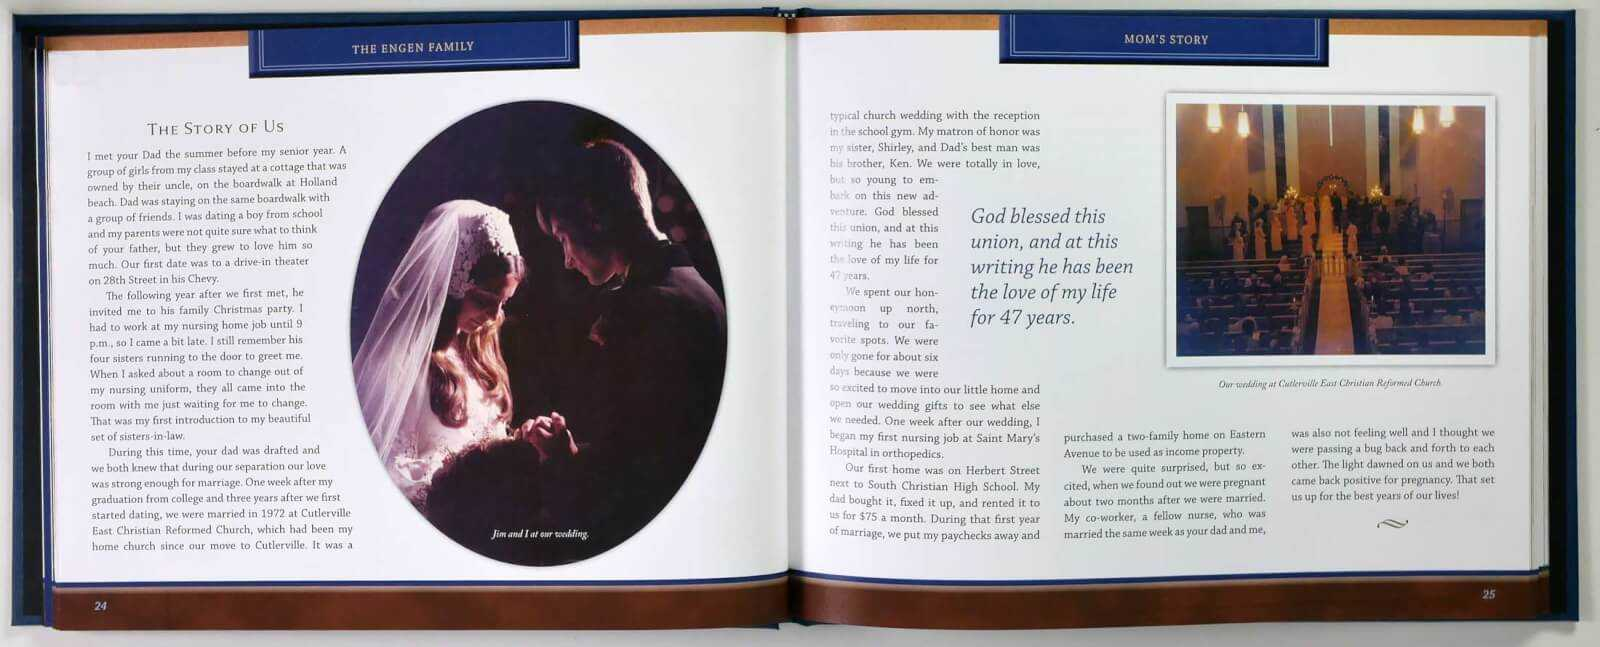 Engen life story book pages 24-25